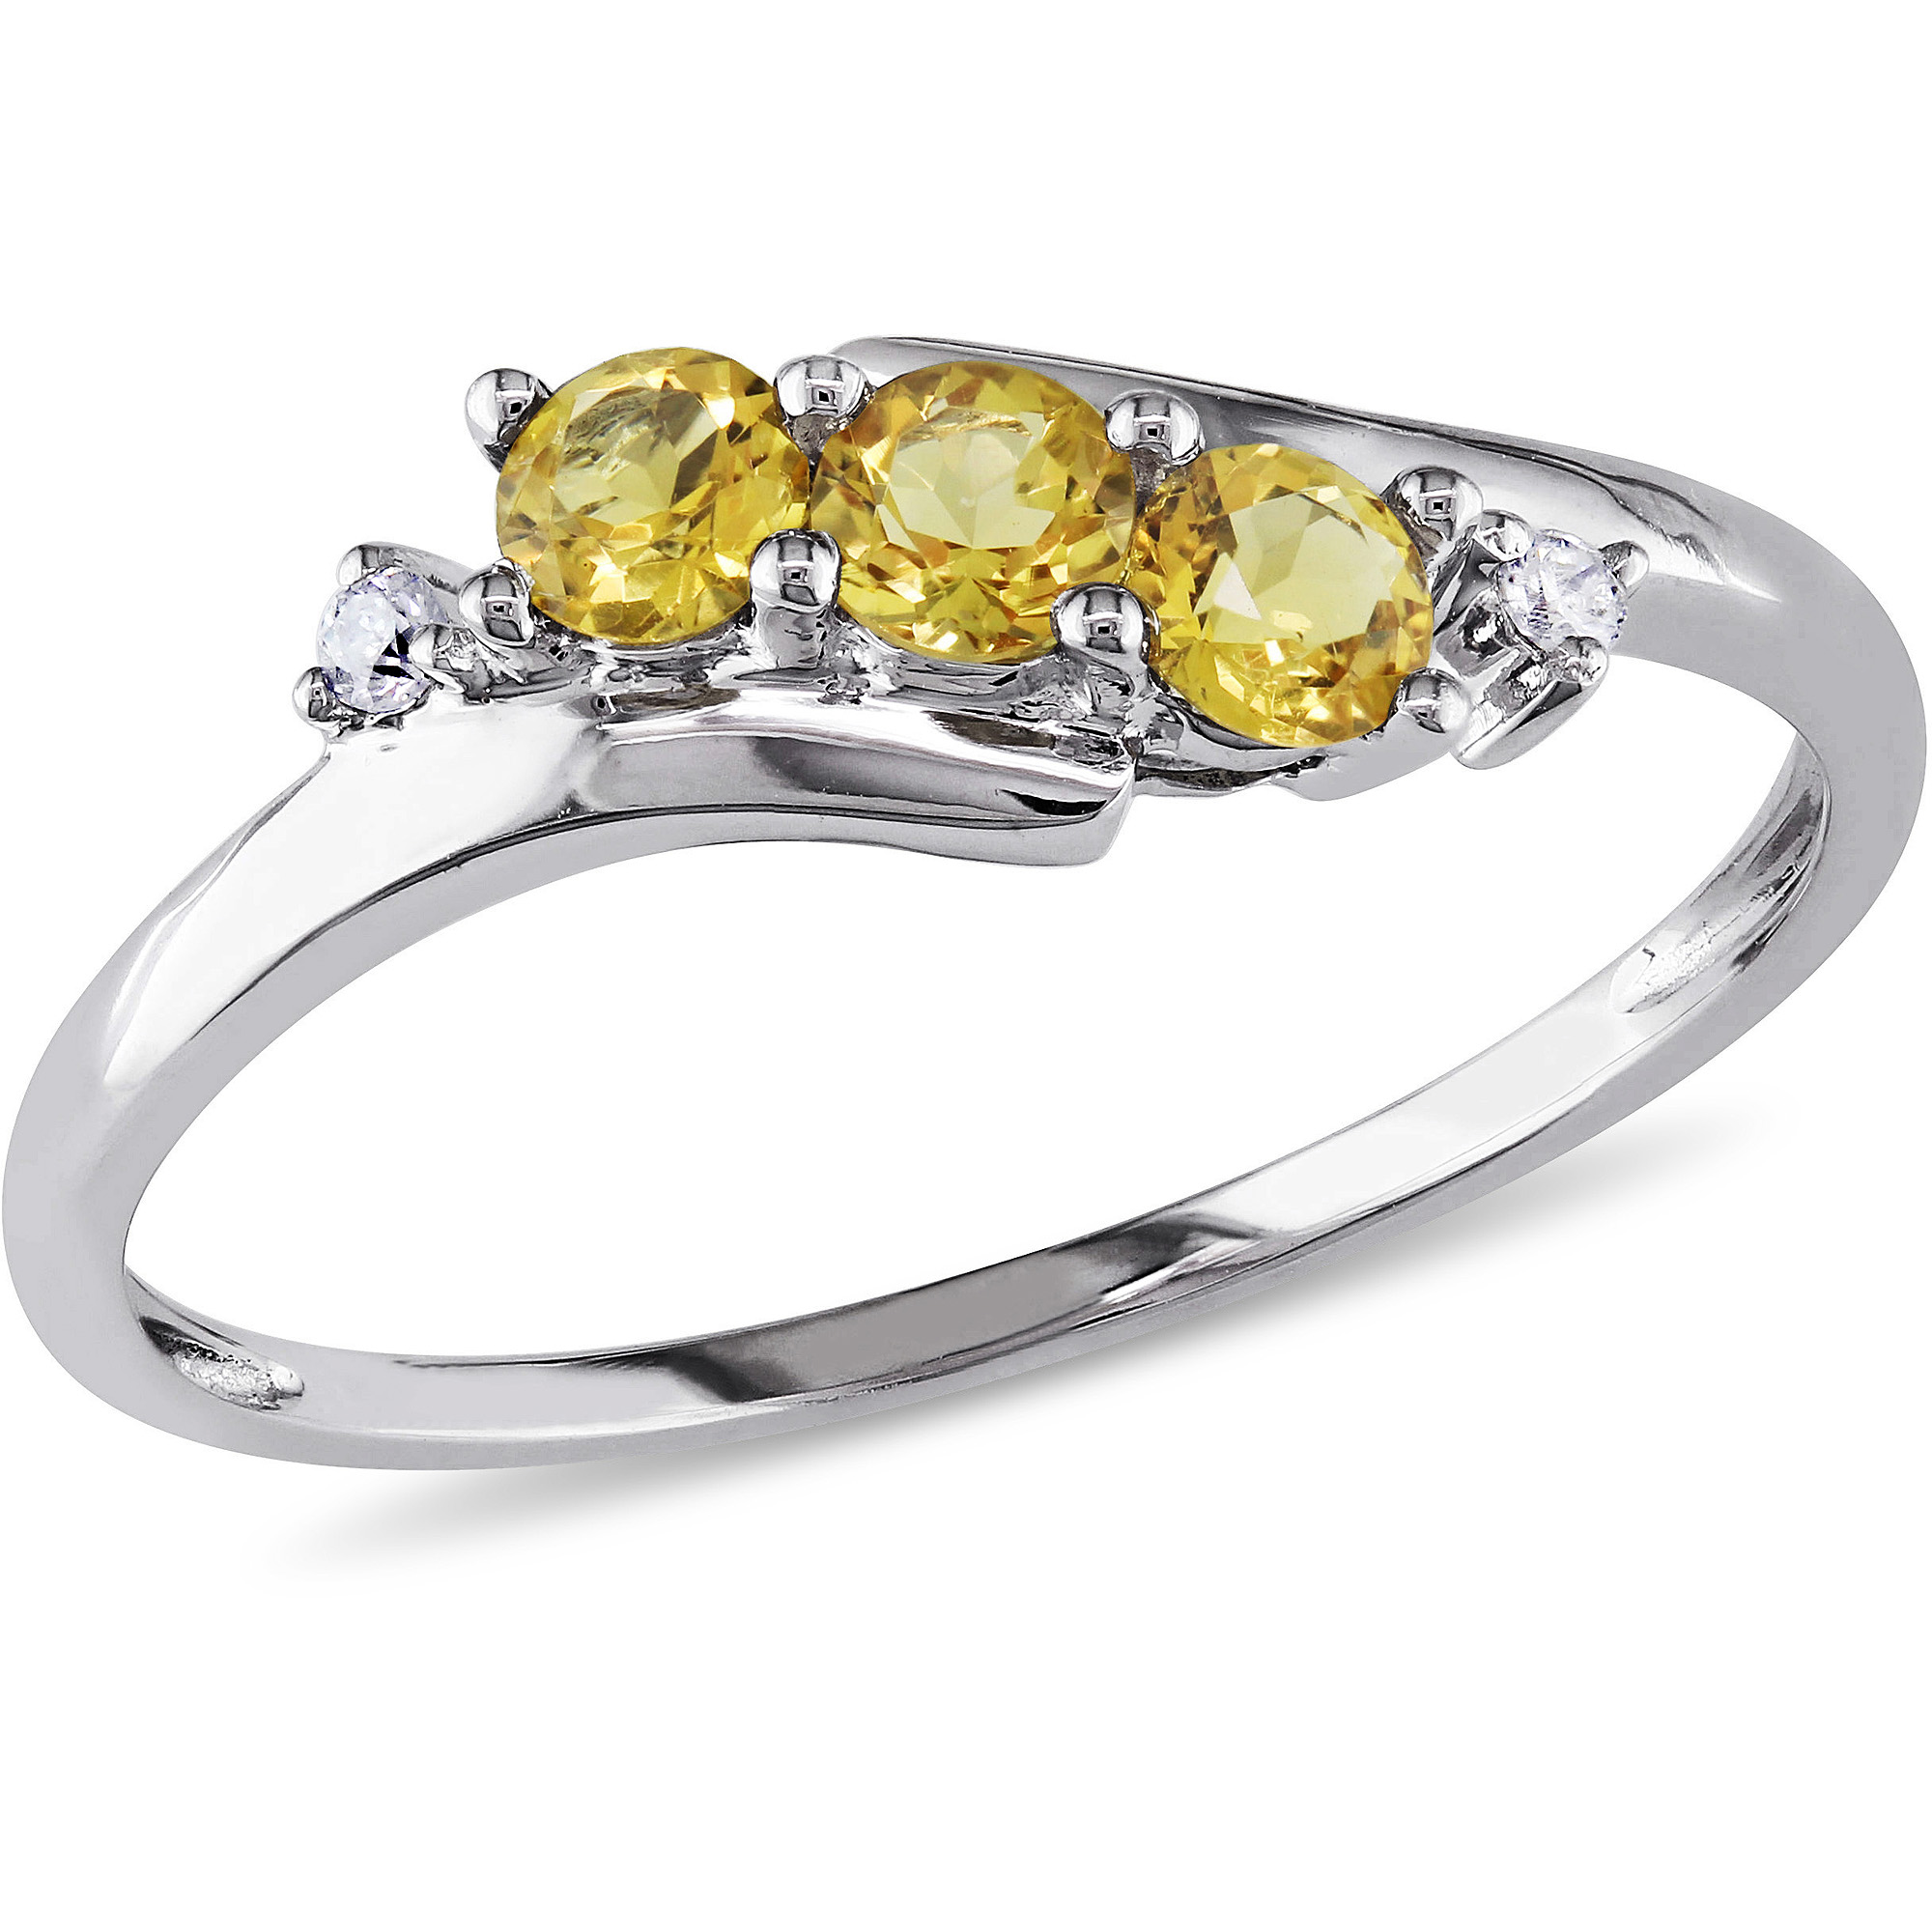 1 3 Carat T.G.W. Citrine and Diamond-Accent 10kt White Gold Three Stone Ring by Generic